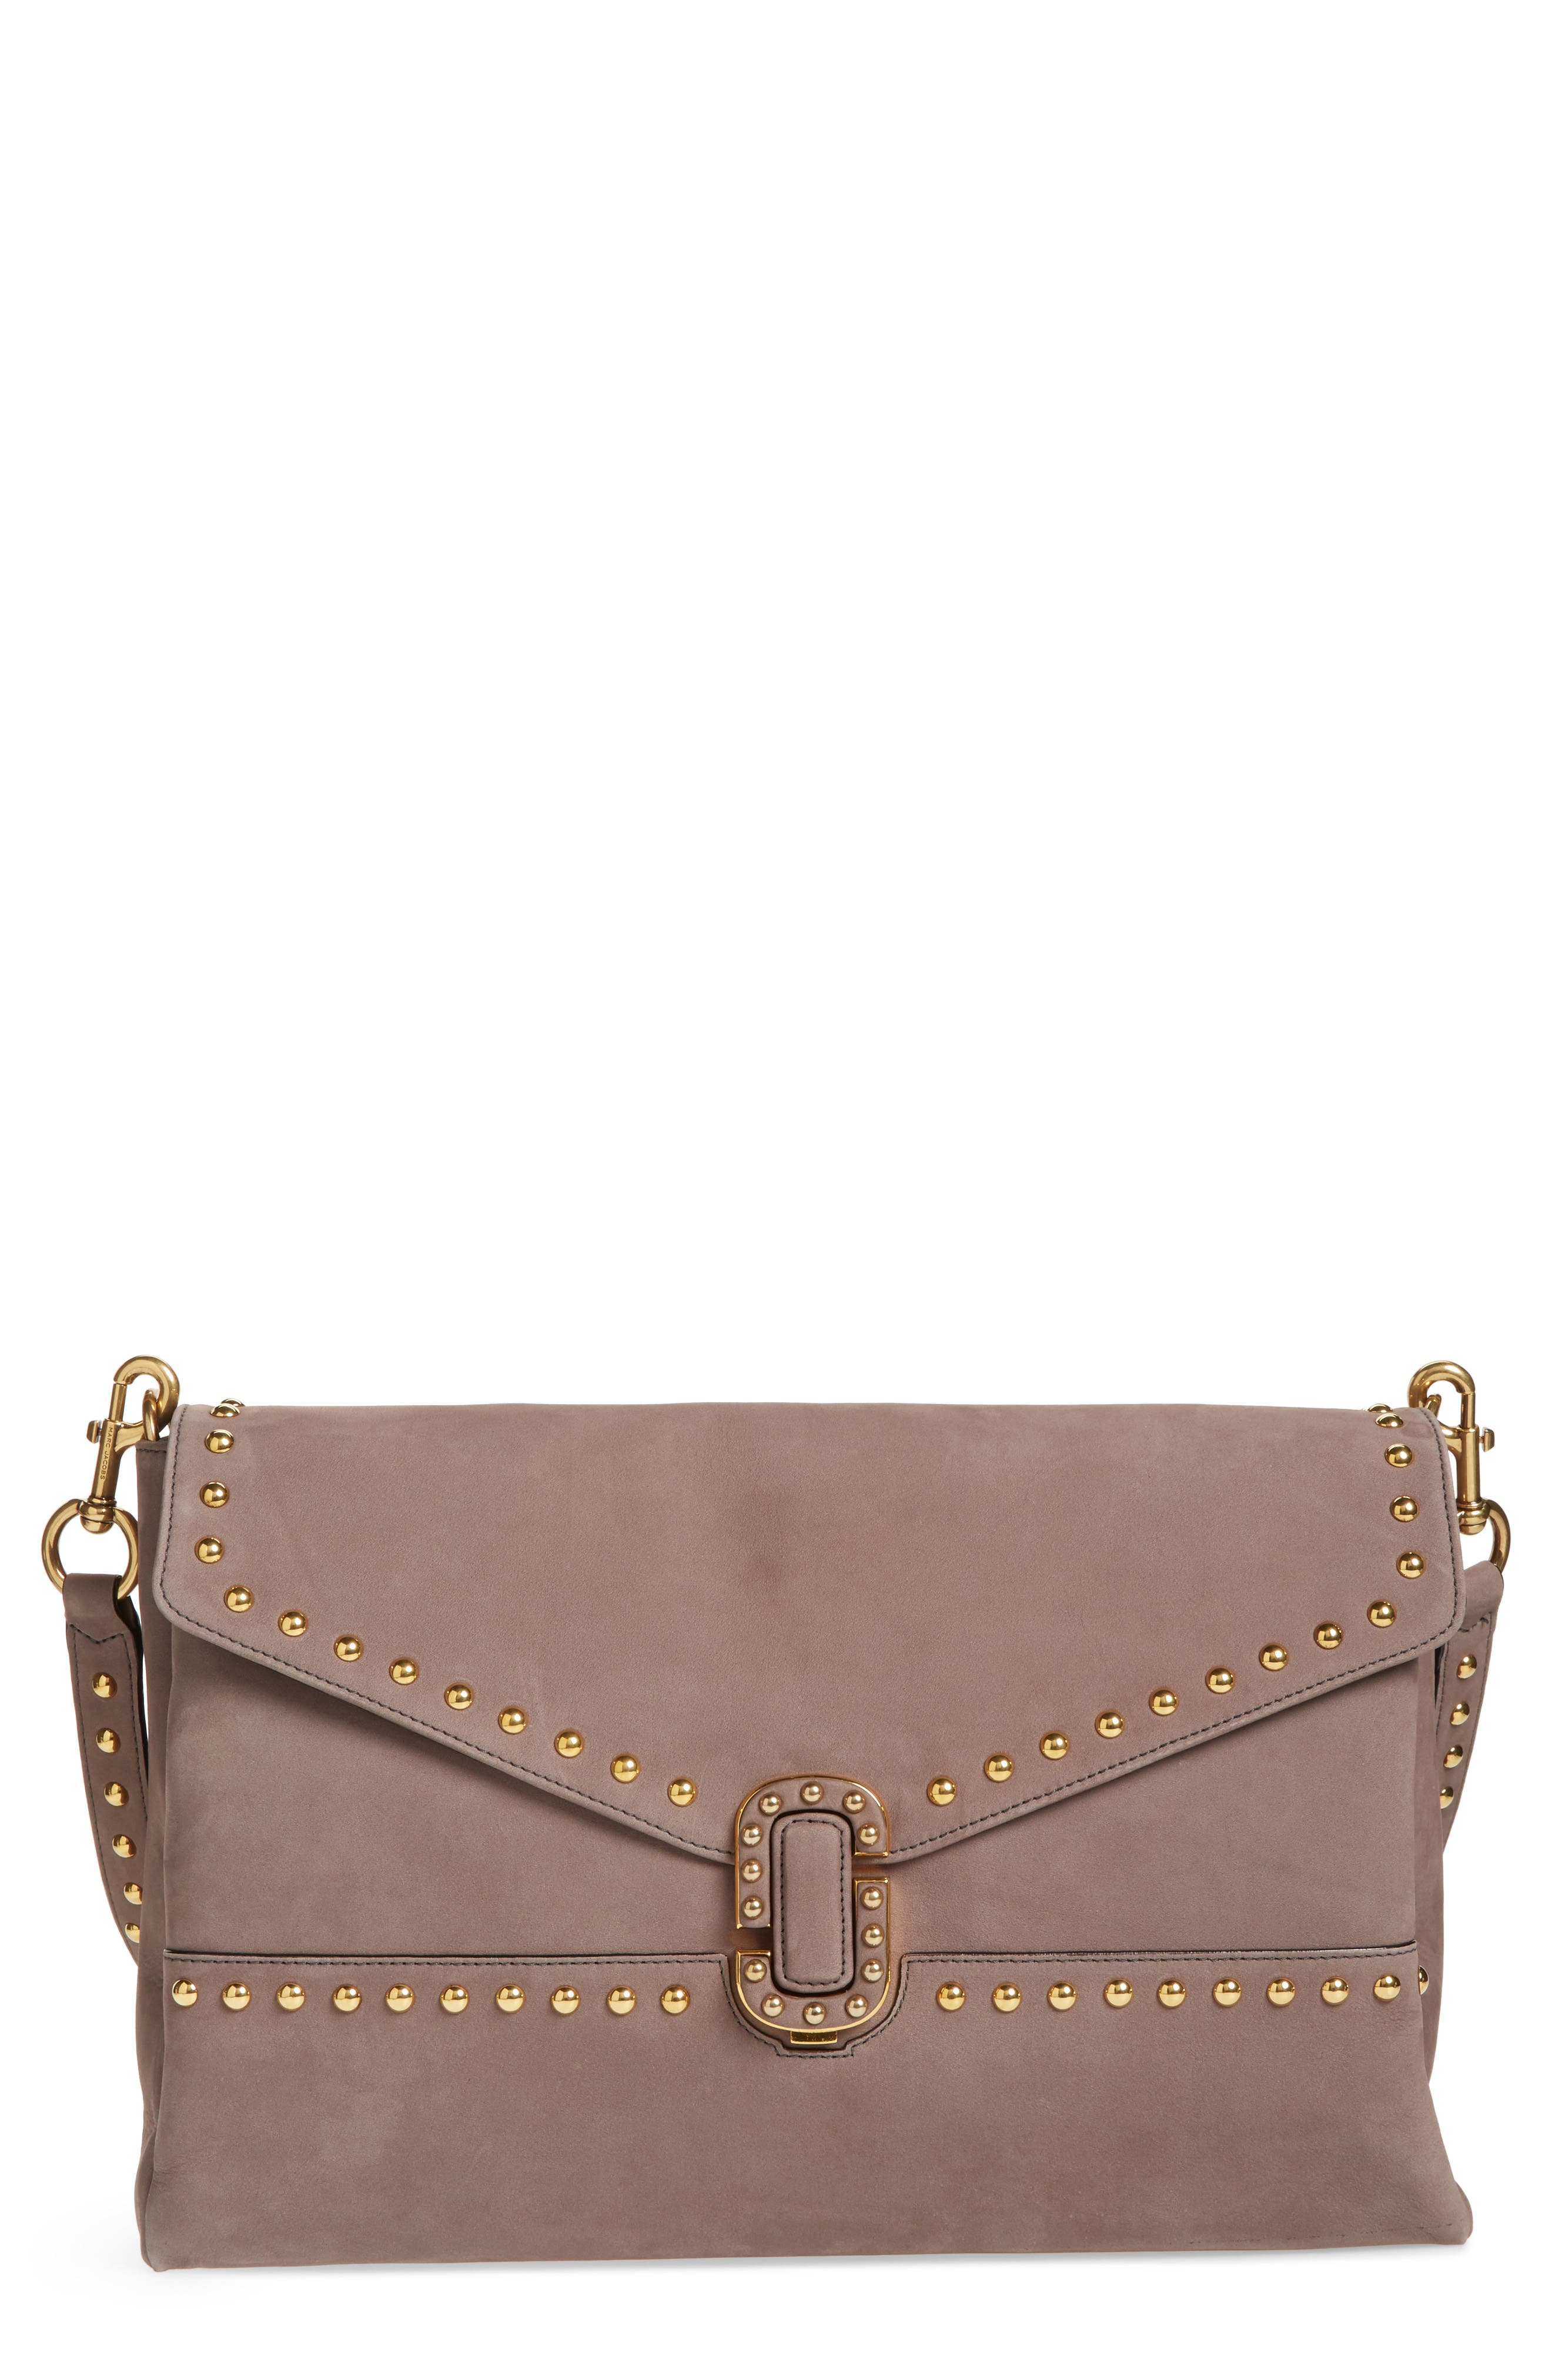 MARC JACOBS Studded Envelope Bag